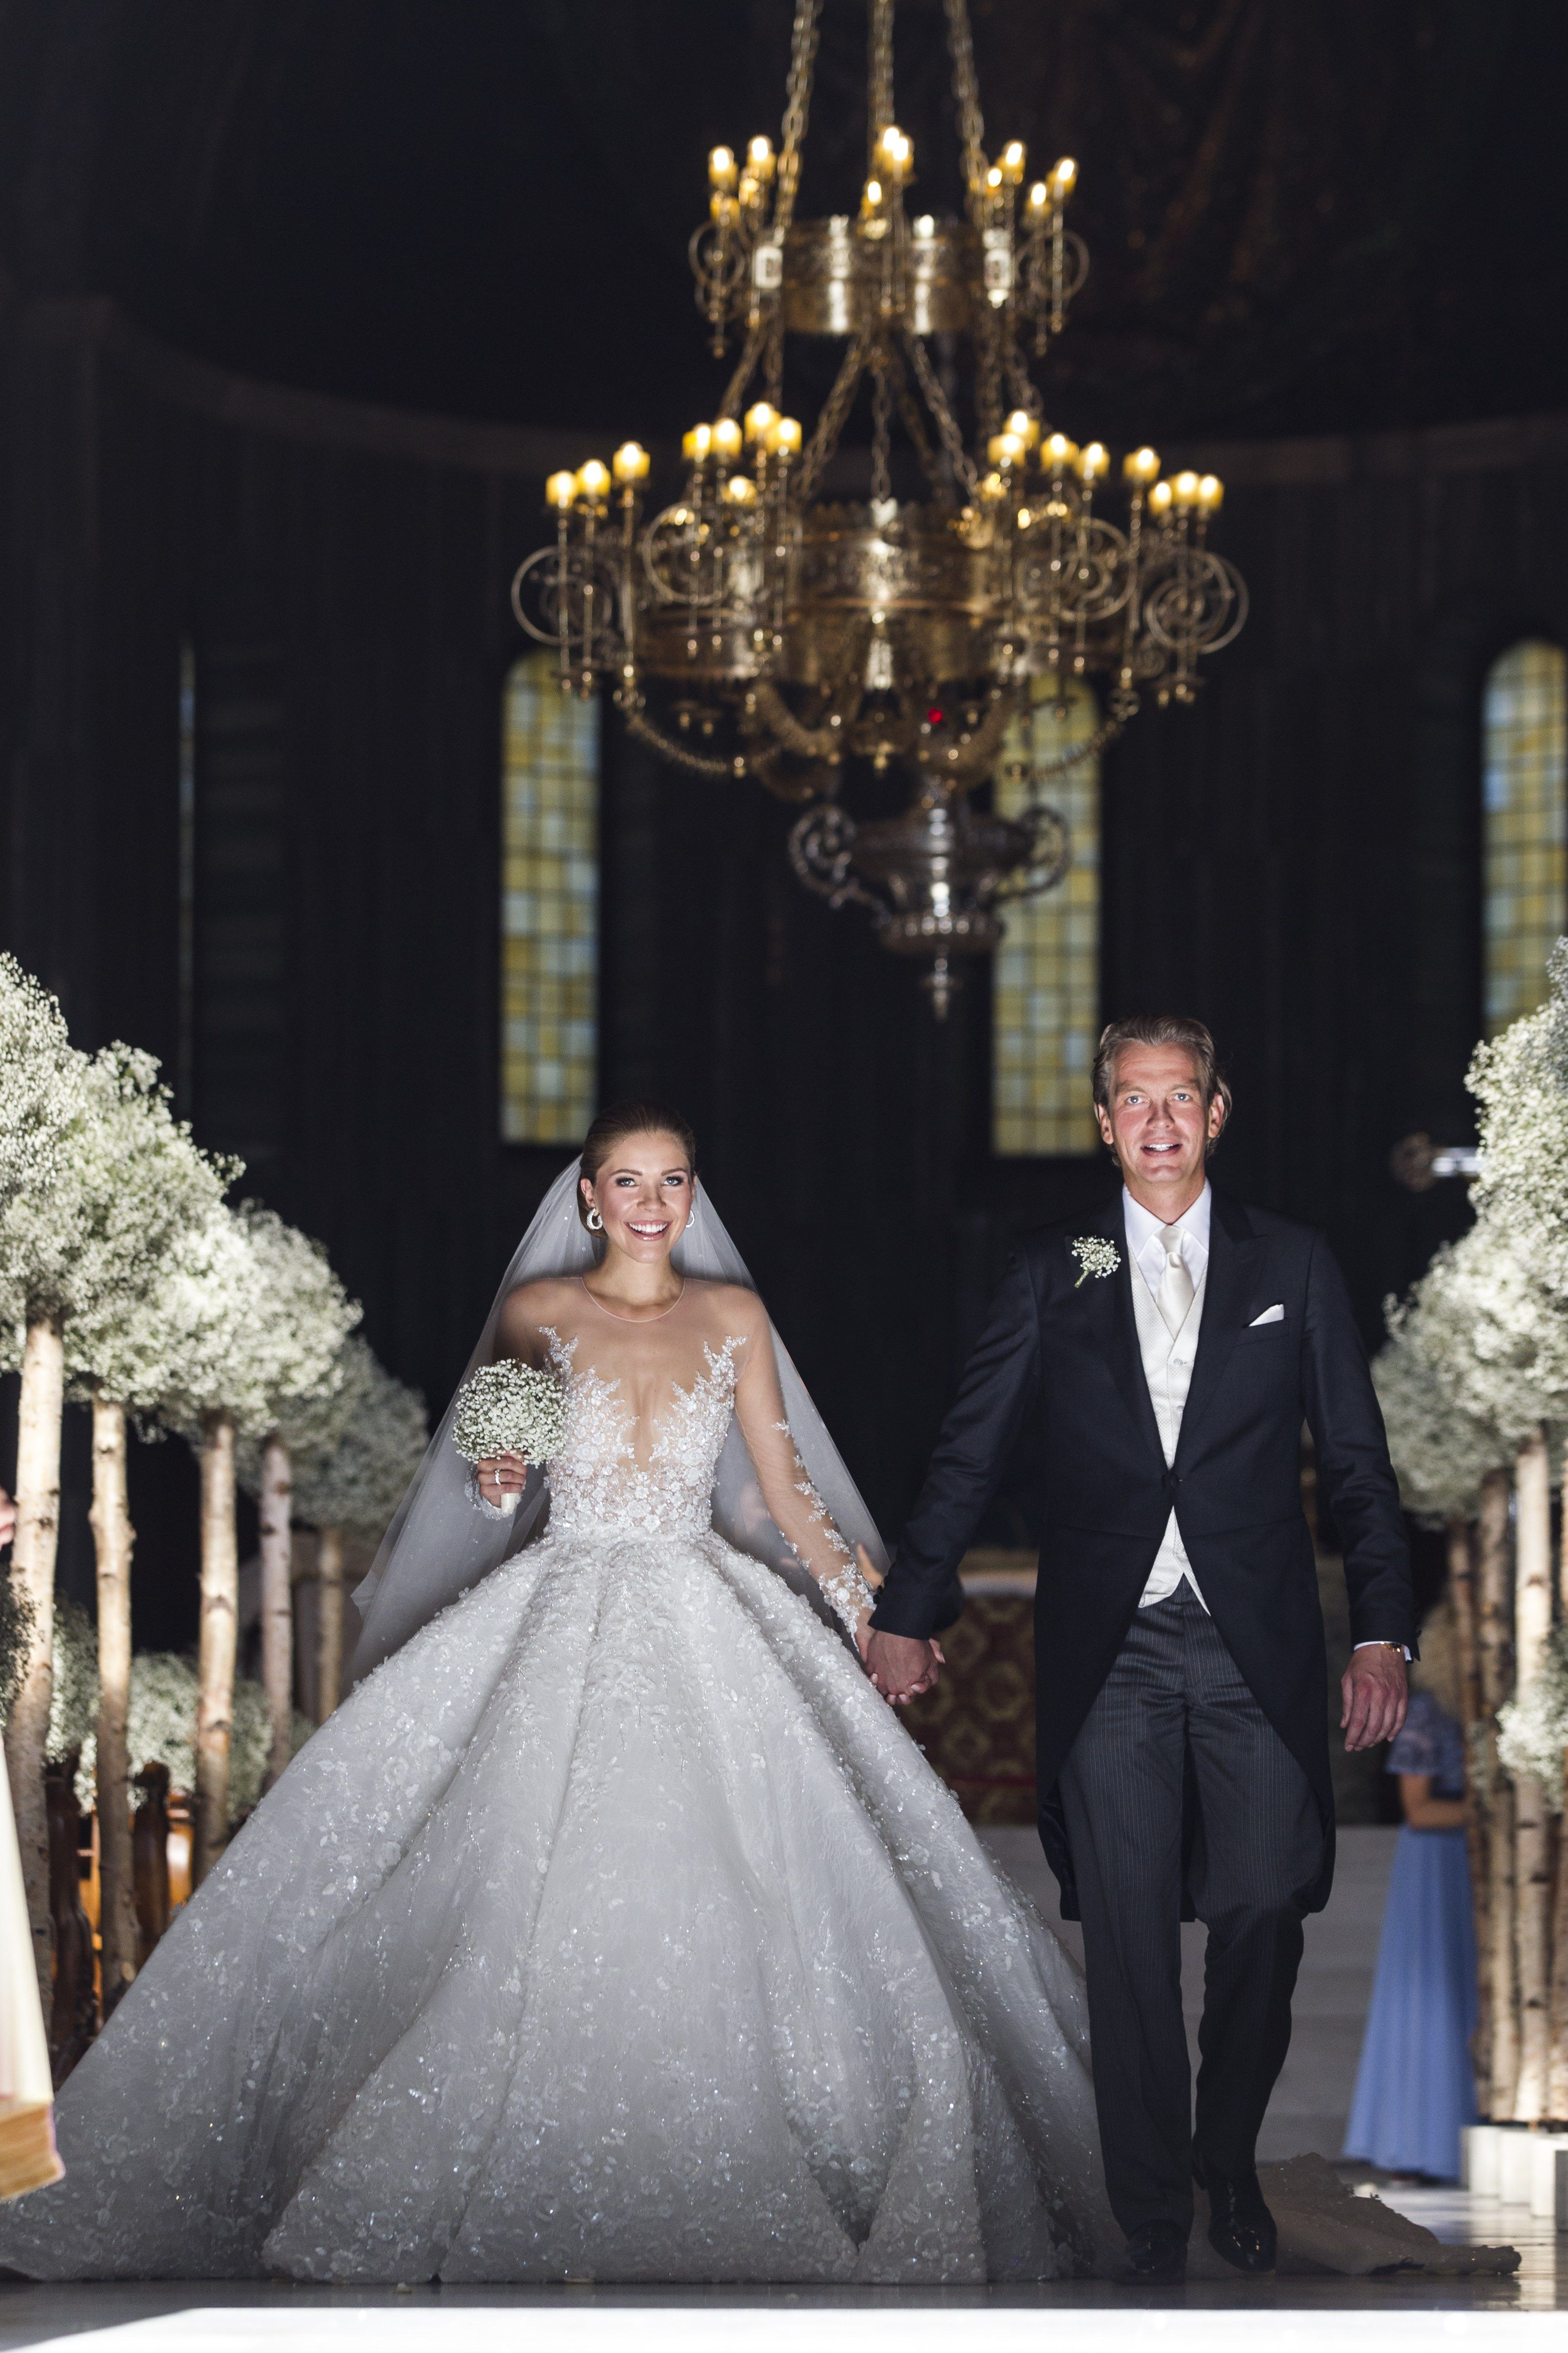 This Bride Married In A Million Dollar Dress Victoria Swarovski Her Wedding Designed By Michael Cinco Featured 500 000 Crystals And